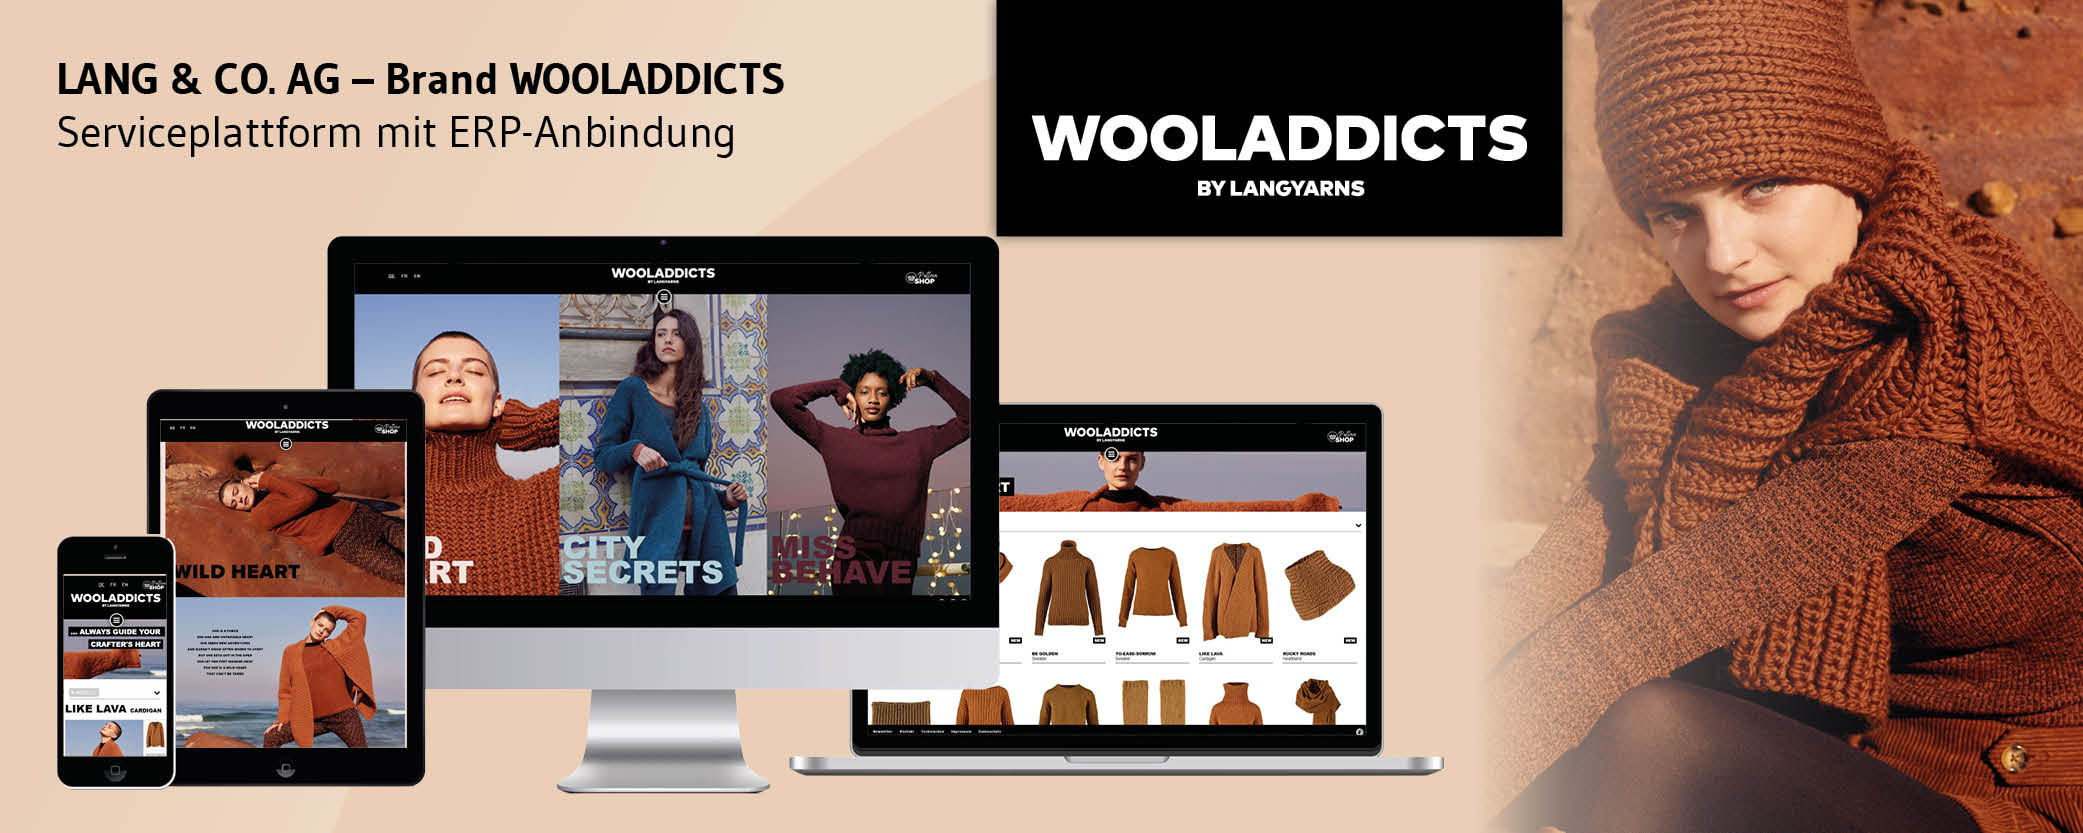 LANG & CO. AG - Brand WOOLADDICTS